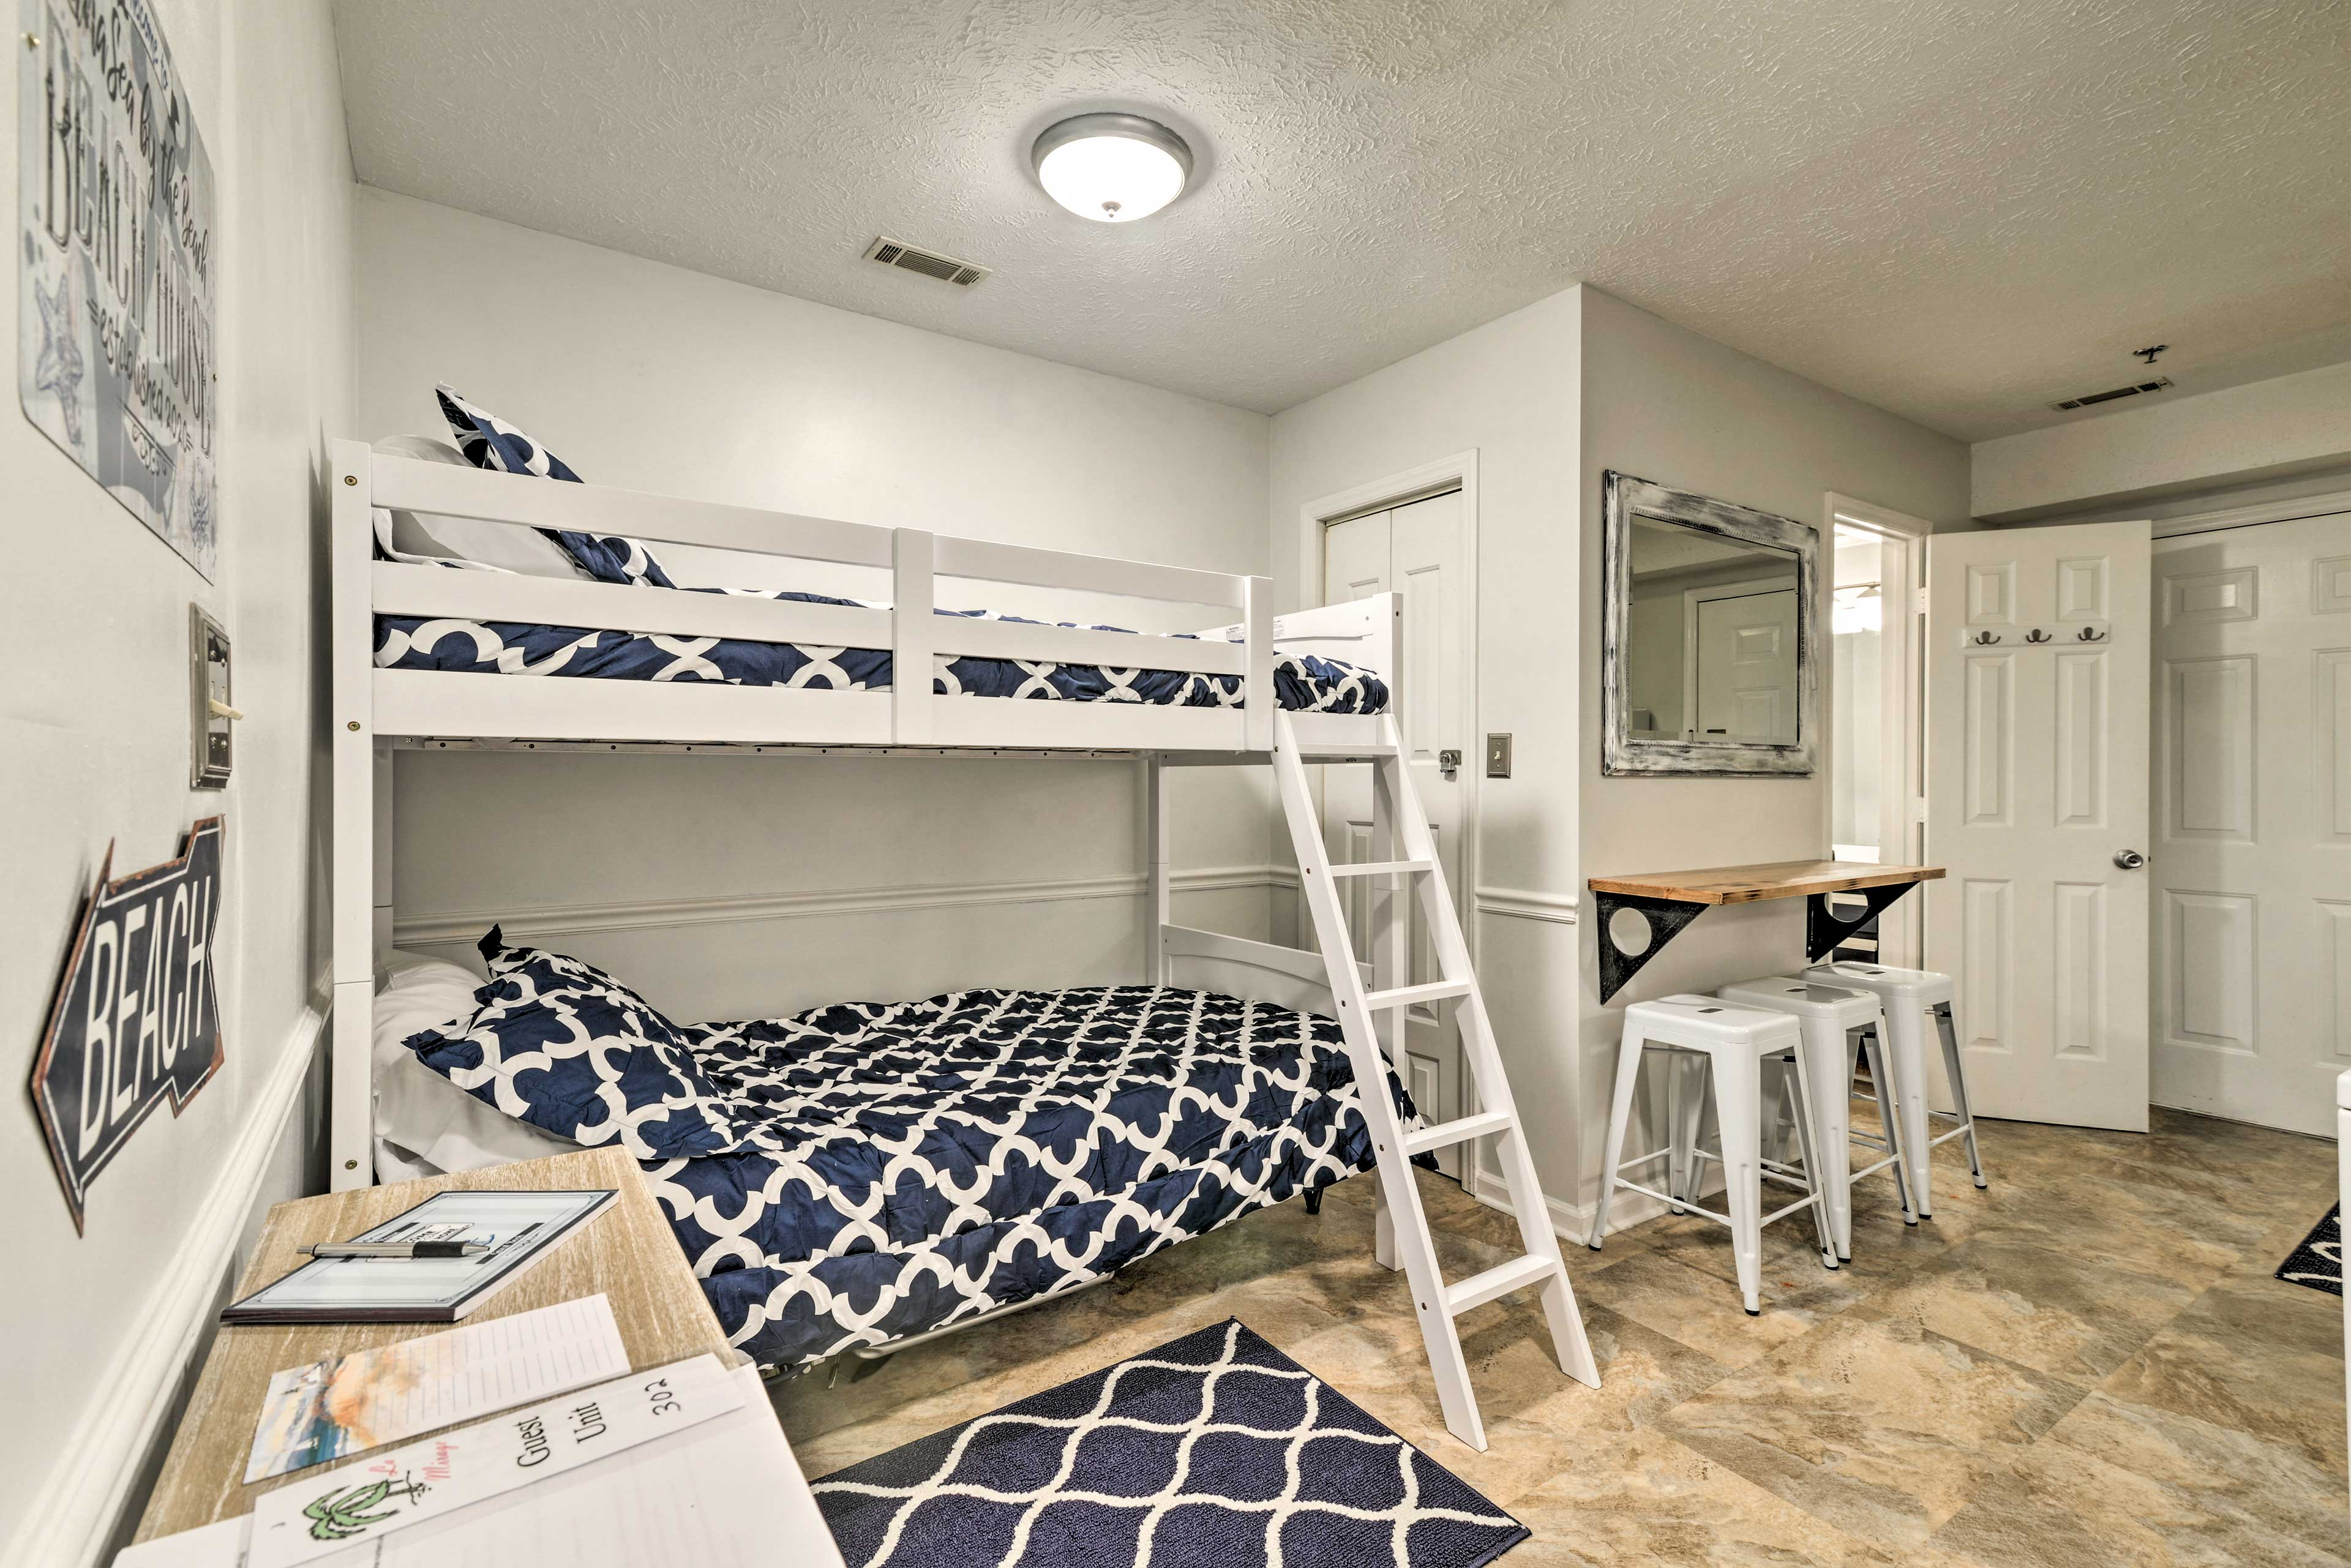 Climb into the twin/full bunk bed and get some shut eye in the family room.